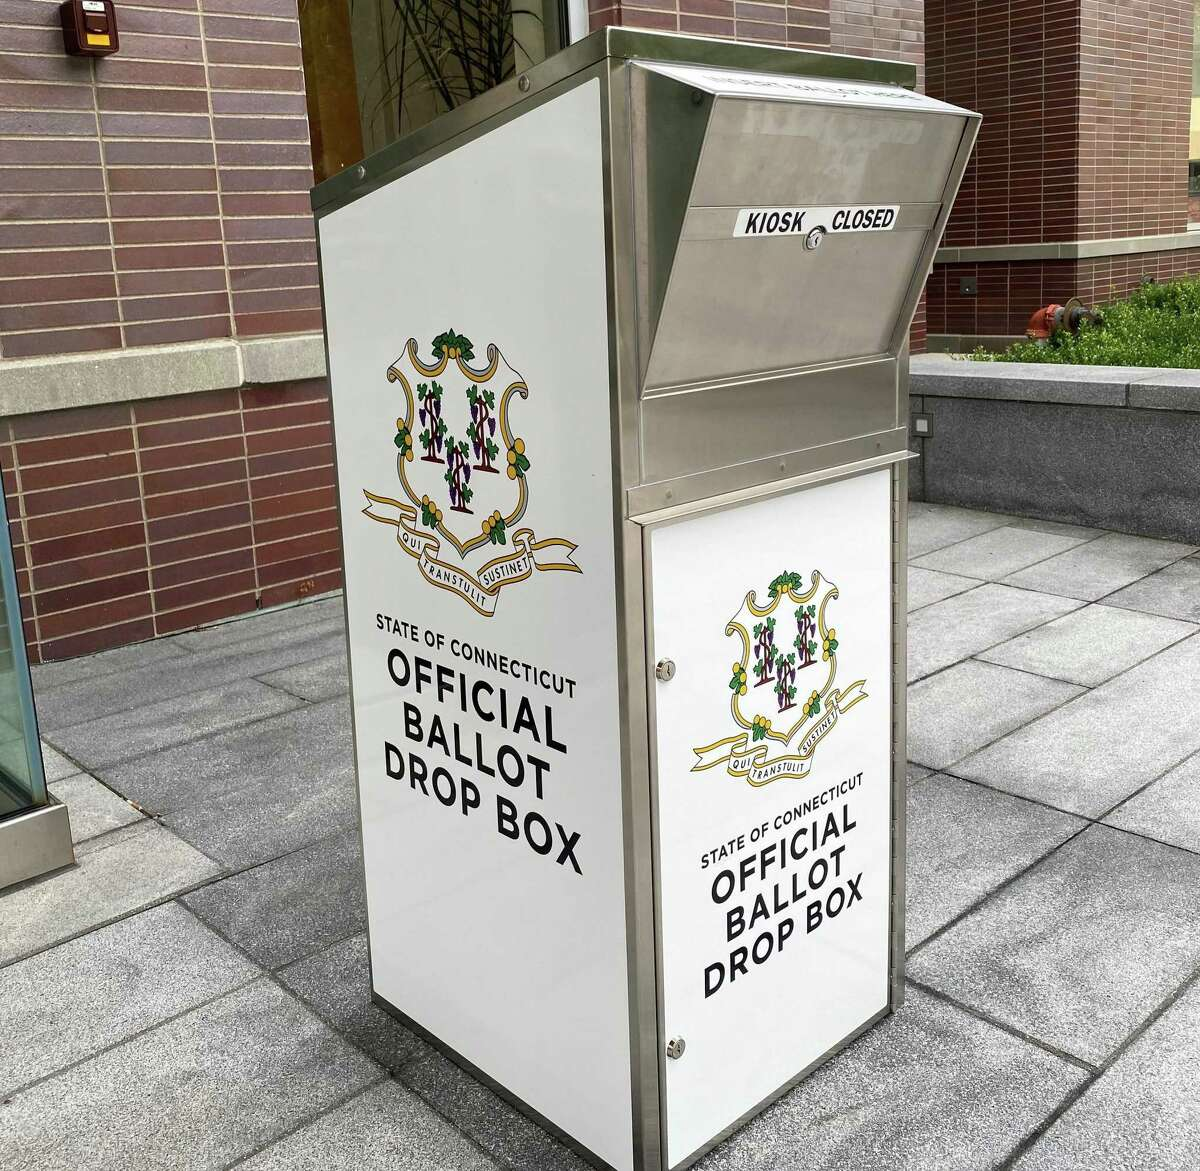 A ballot box outside Town Hall will accept absentee ballots in the Nov. 3 election until 8 p.m. Tuesday.